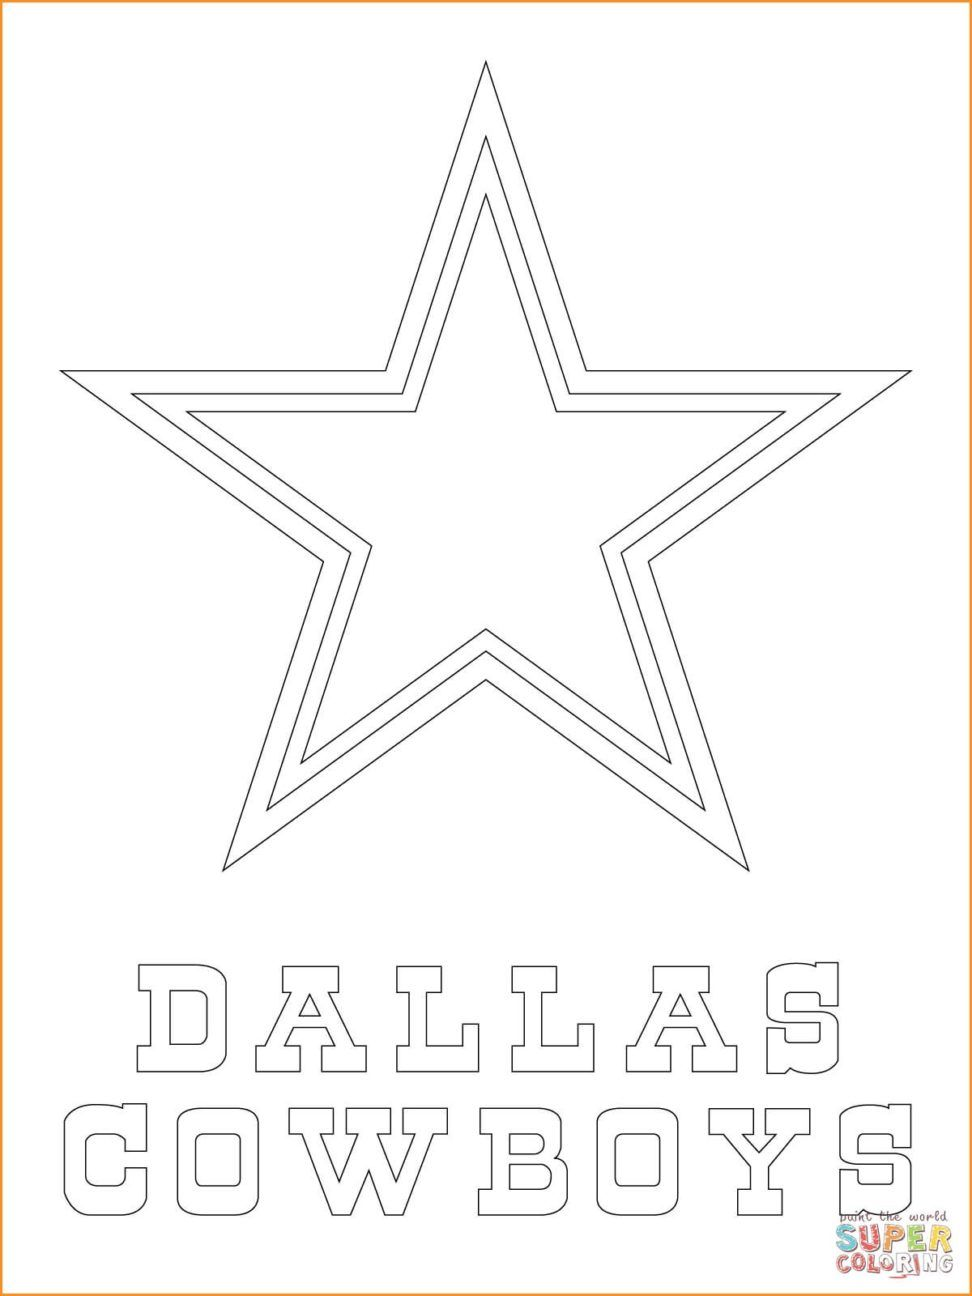 Dallas Cowboys Coloring Pages | Coloring pages for Kiara | Pinterest